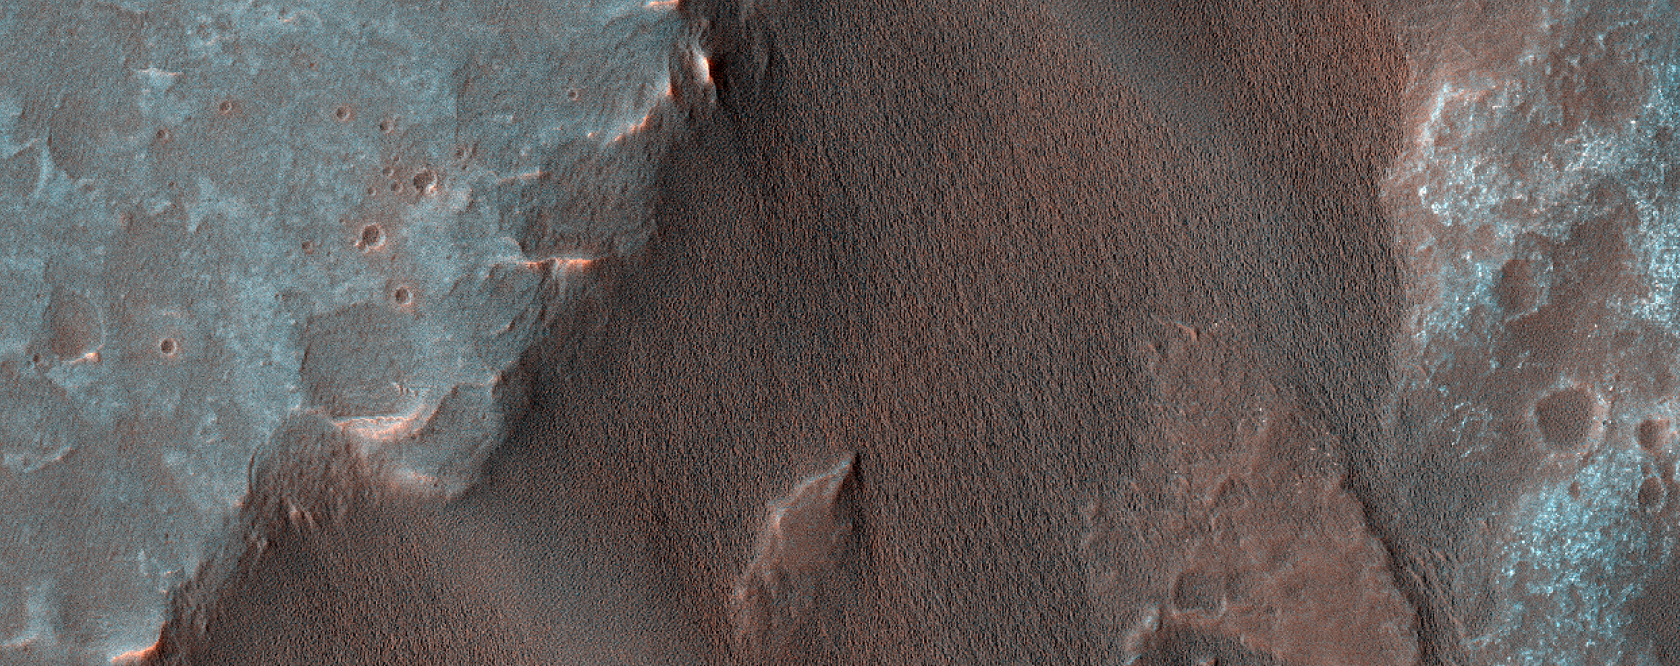 Fan Material in South Gale Crater